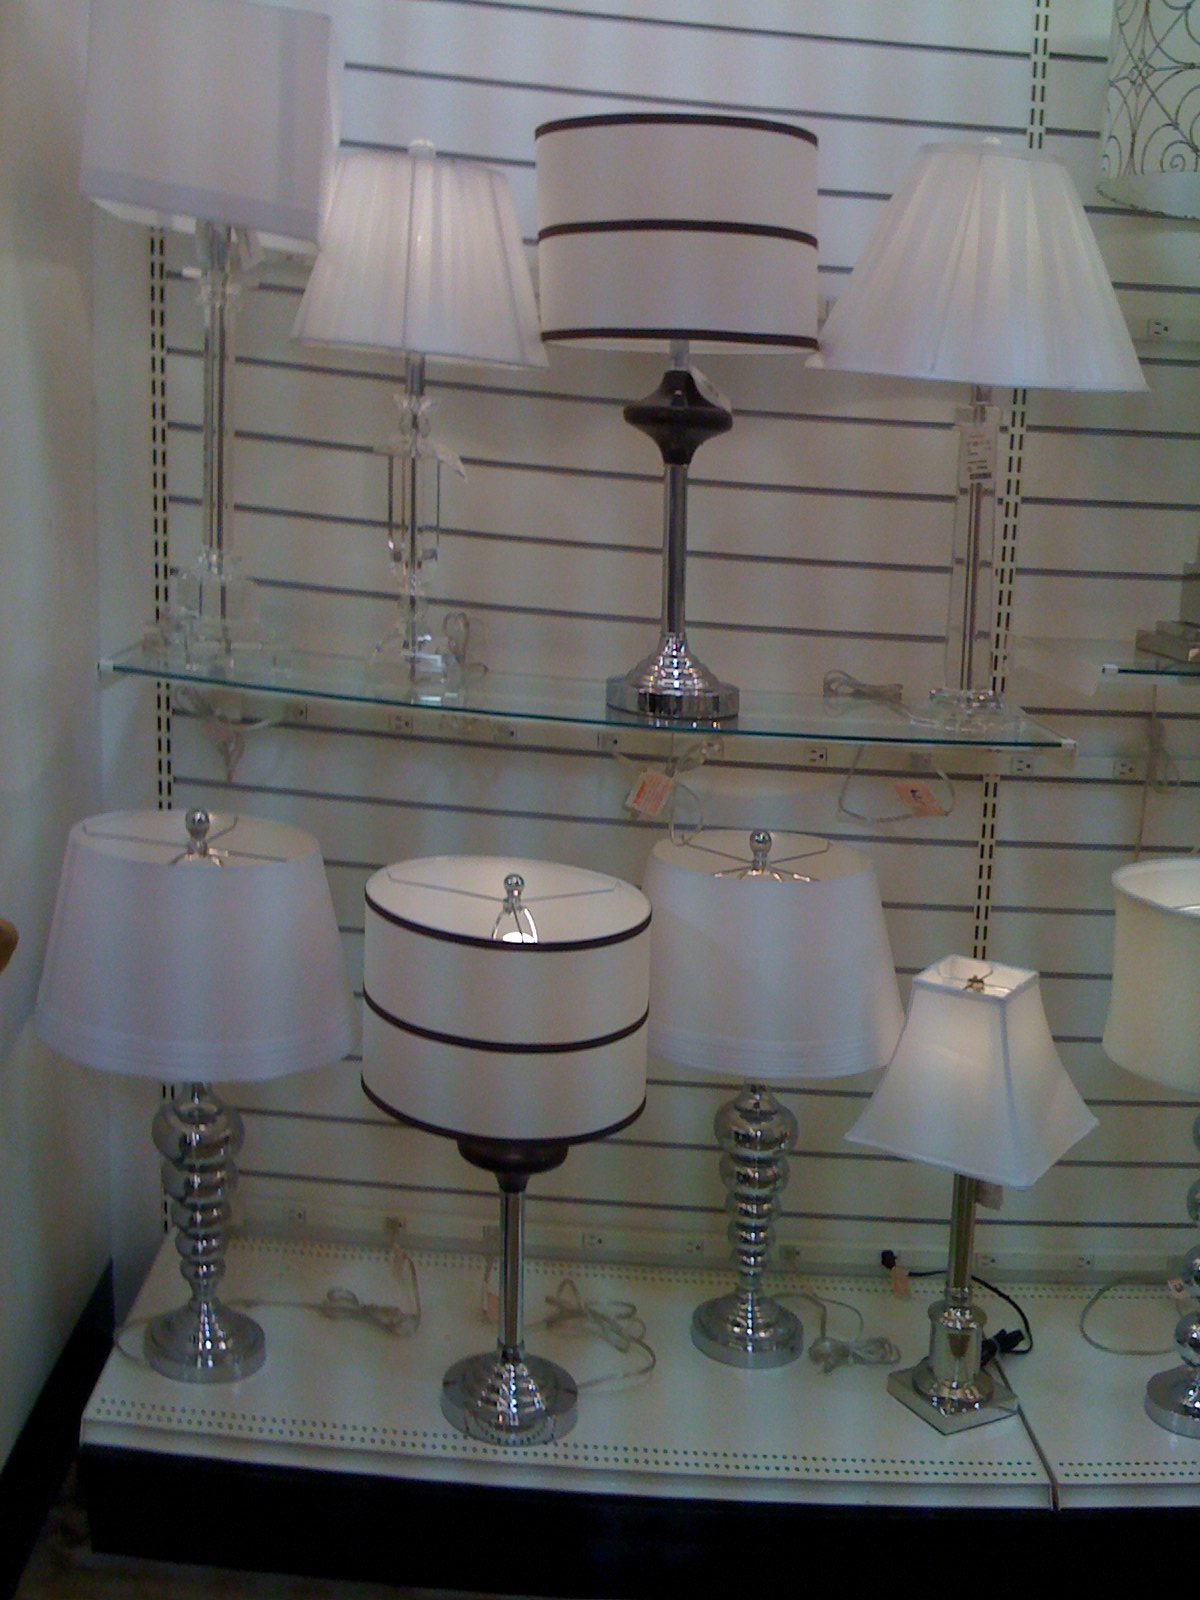 10 facts about Tj maxx lamps